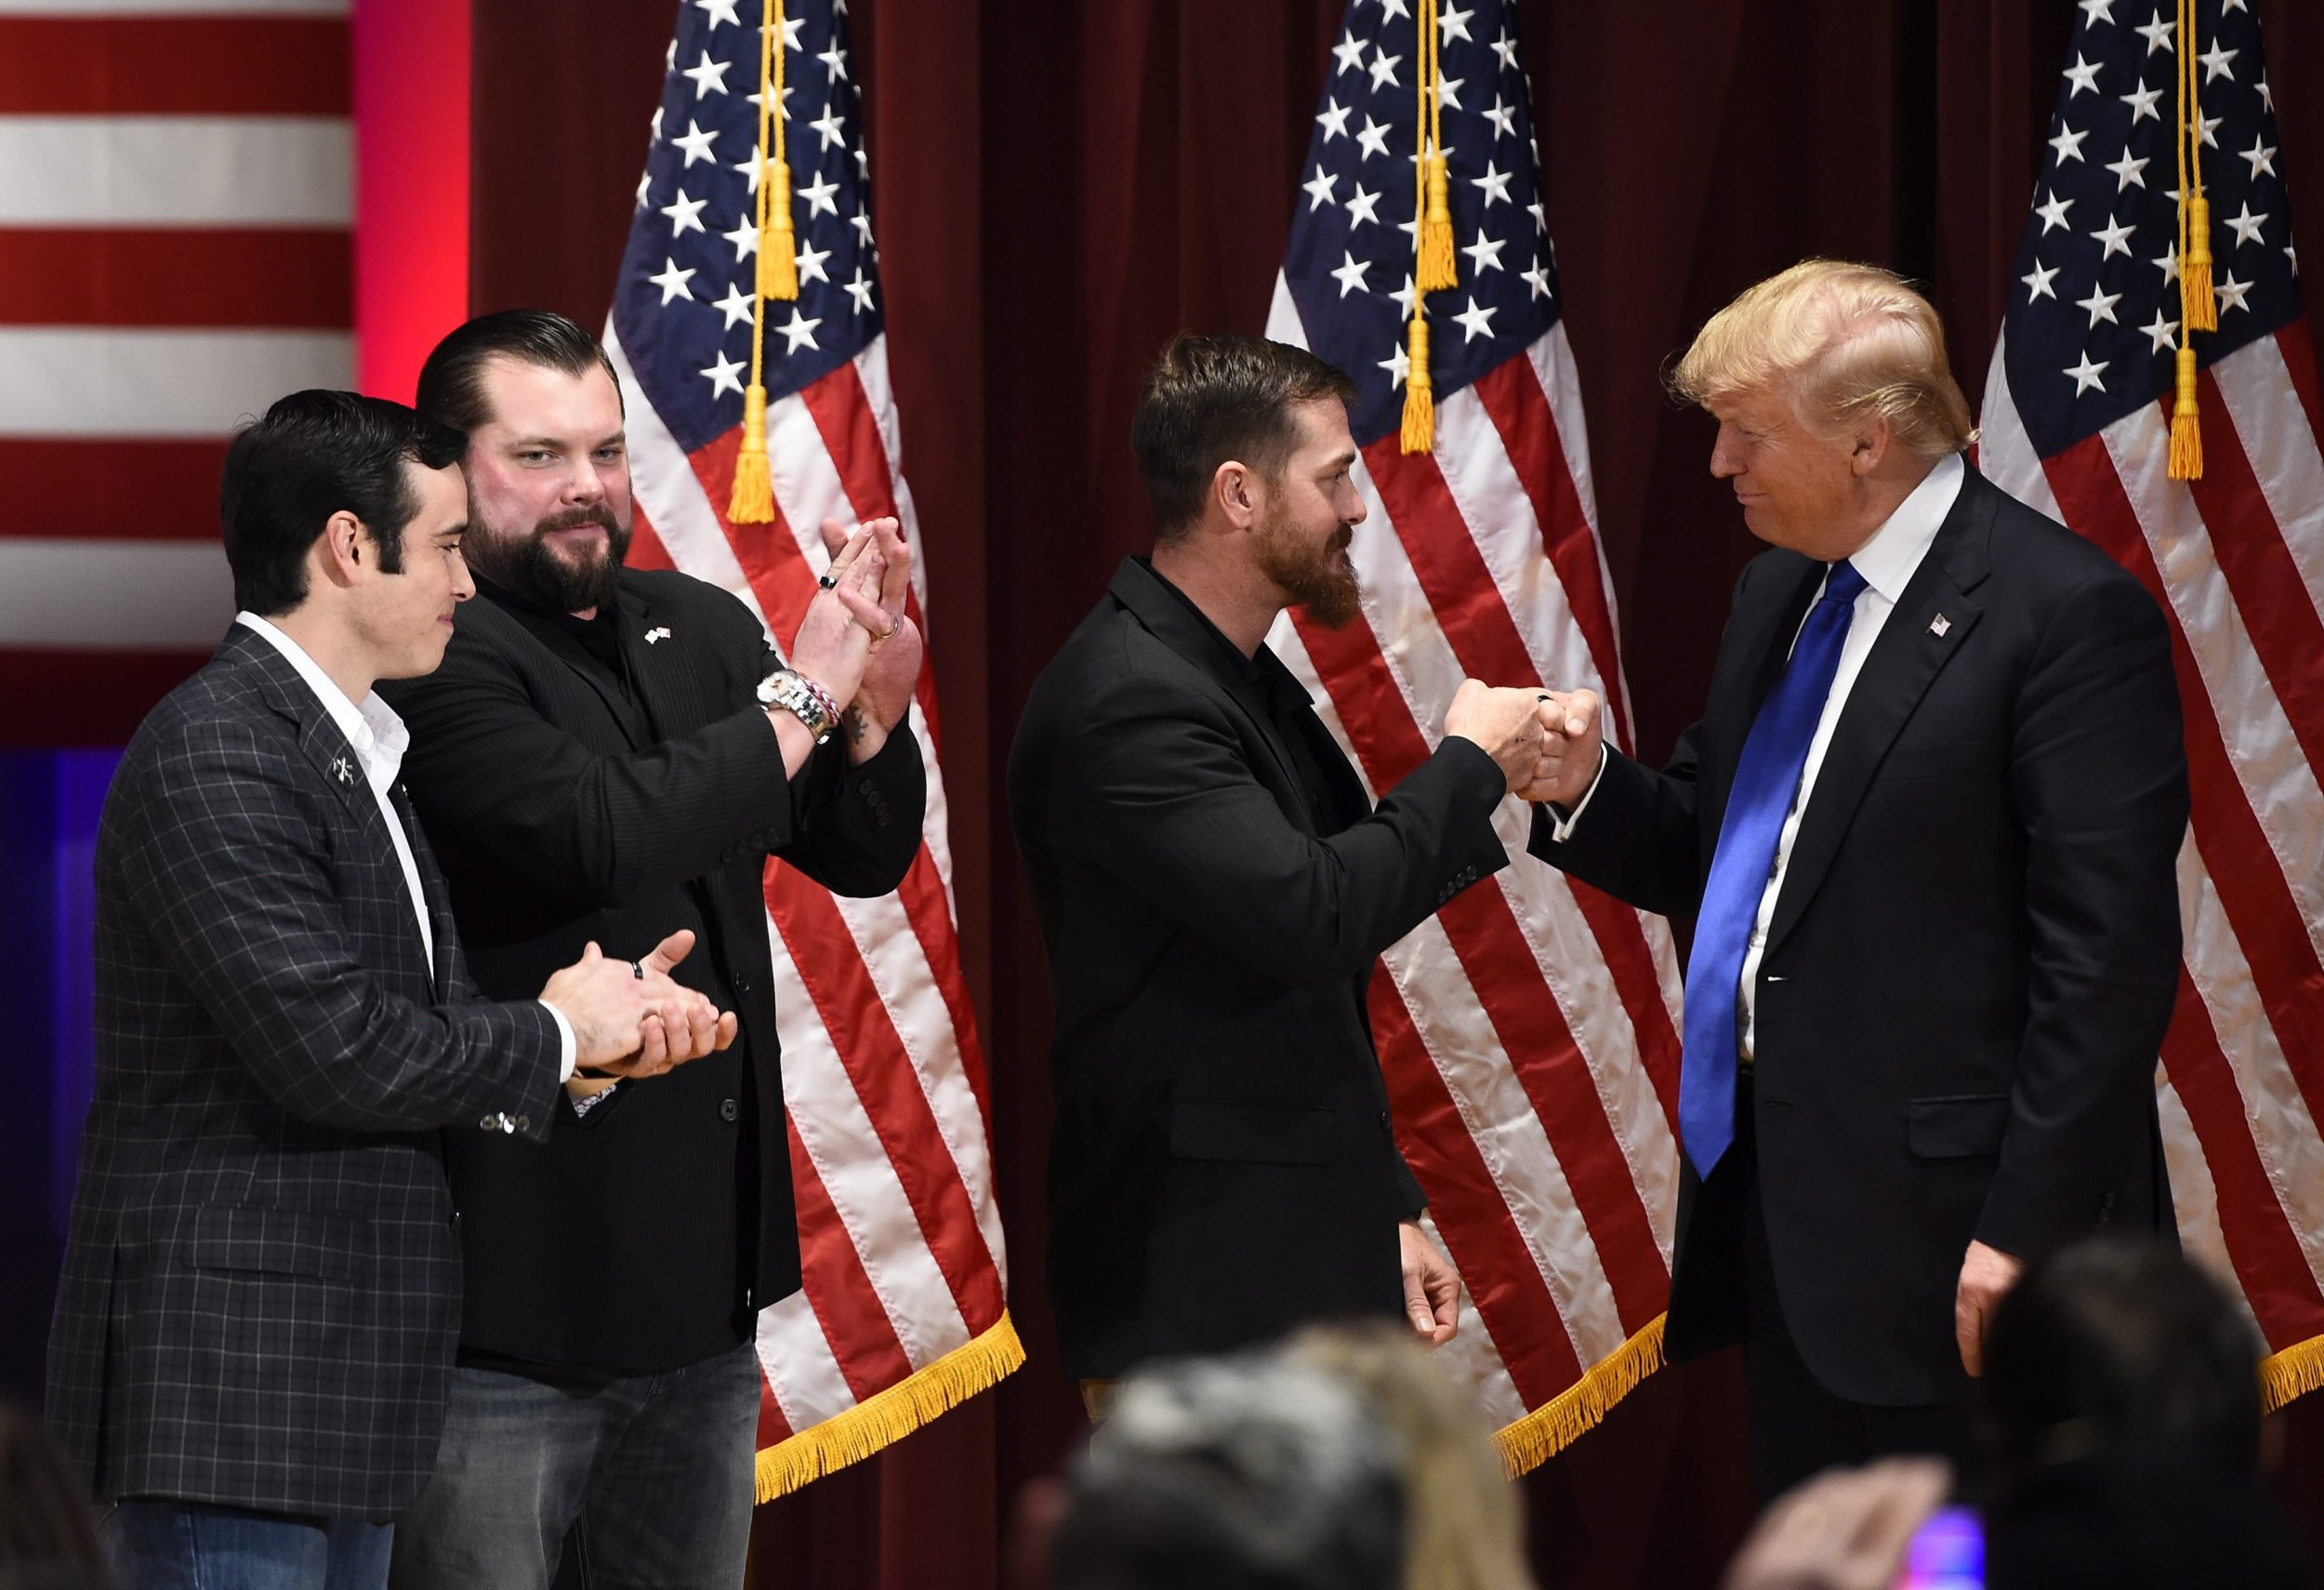 epaselect epa05132481 Three veterans give Businessman and Republican presidential candidate Donald Trump (R) a 22 Kill Honor Ring that represents twenty two veterans that kill themselves daily by suicide during a rally on the Drake University campus at a special event to benefit veterans after skipping the Fox News GOP debate in Des Moines, Iowa, 28 January 2016. The Iowa Caucus will be held 01 February 2016 and is the first official test of candidates seeing their parties nominations. EPA/LARRY W. SMITH